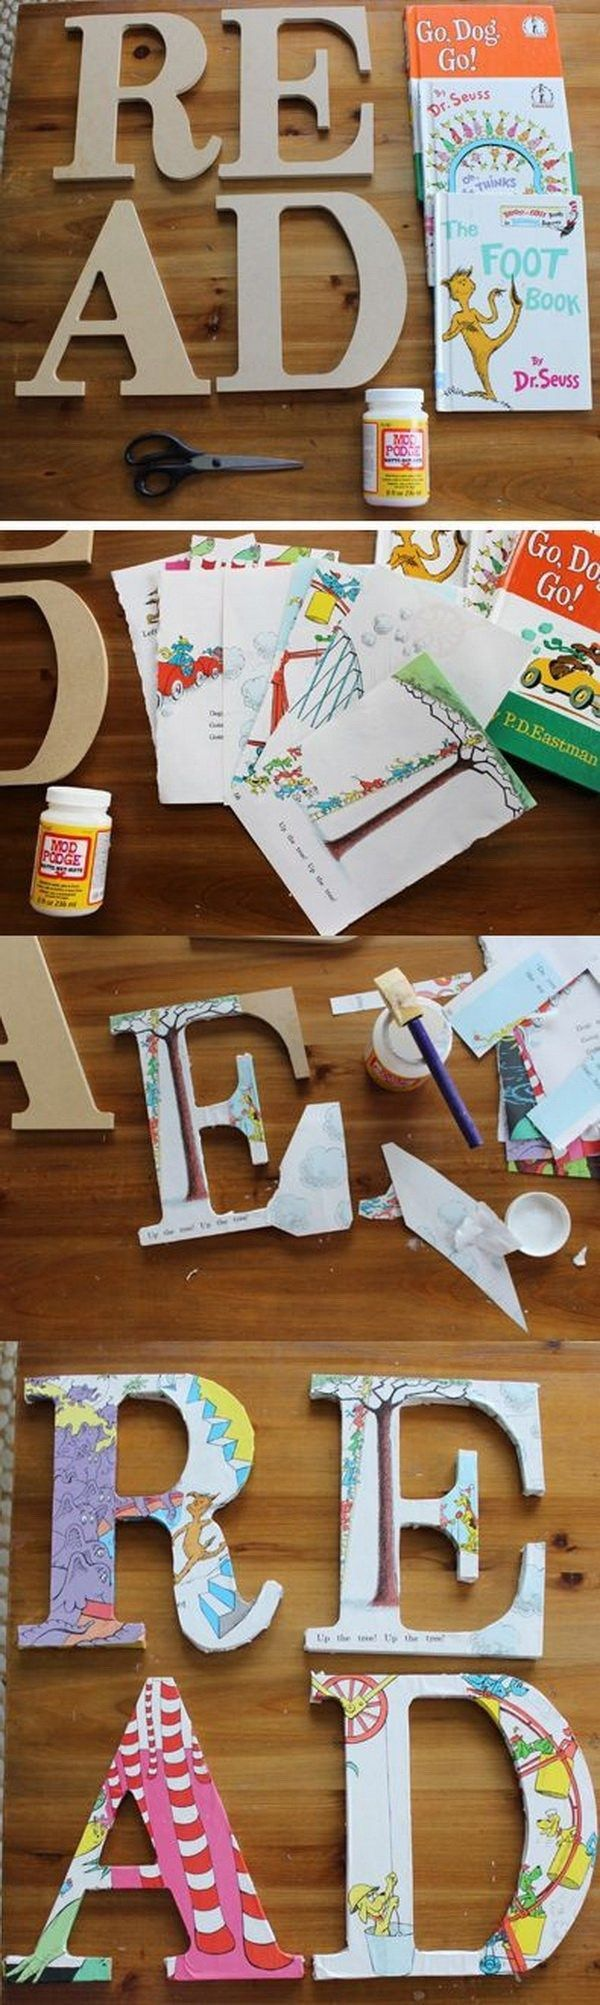 DIY Decoupage Letters. Use books with missing pages to make these decorative letters for kids room!